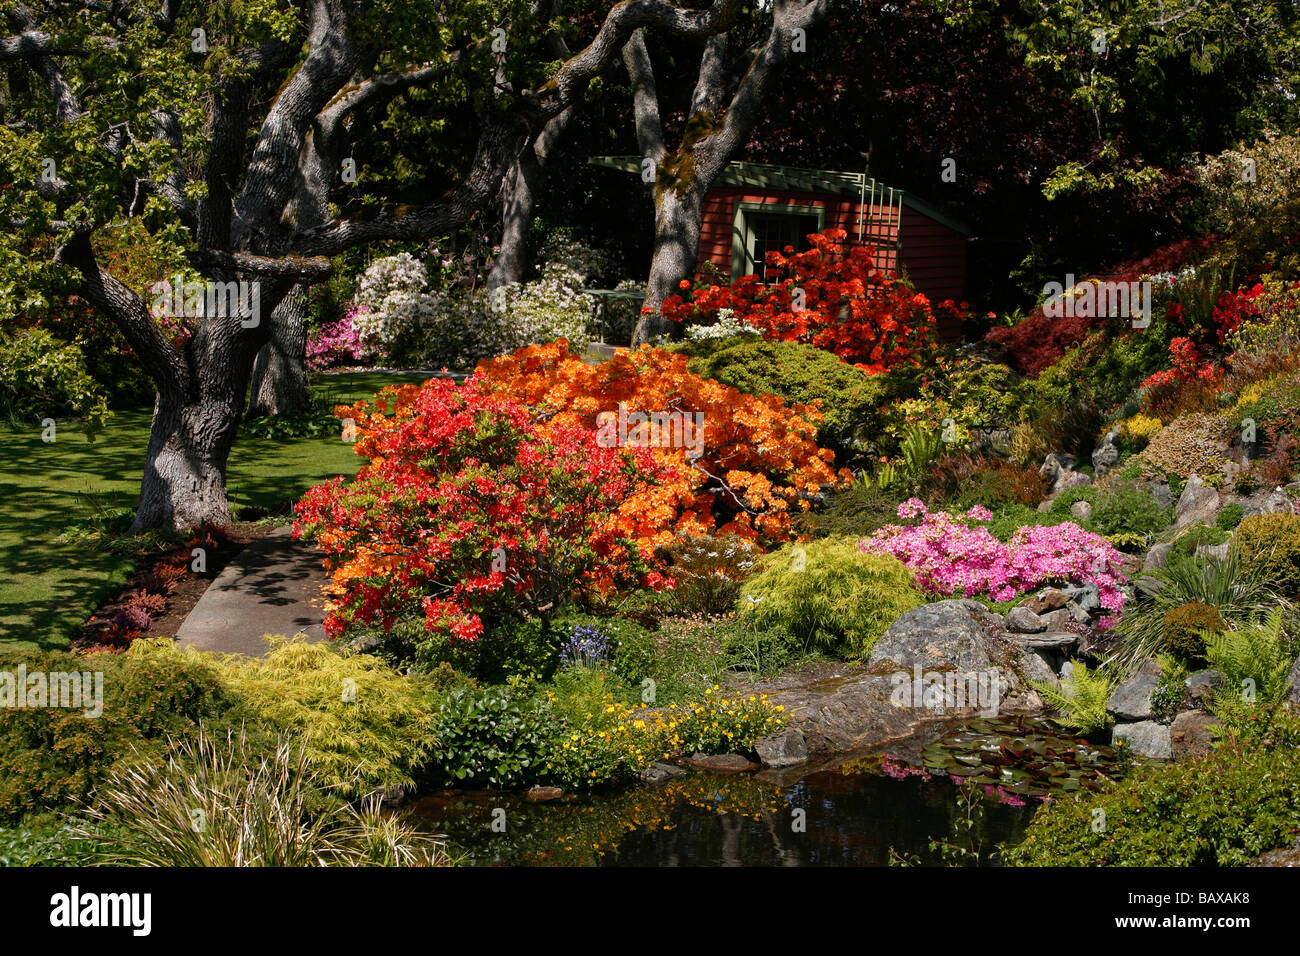 Flowers in bloom at Abkhazi Garden in Victoria, BC, Canada Stock ...